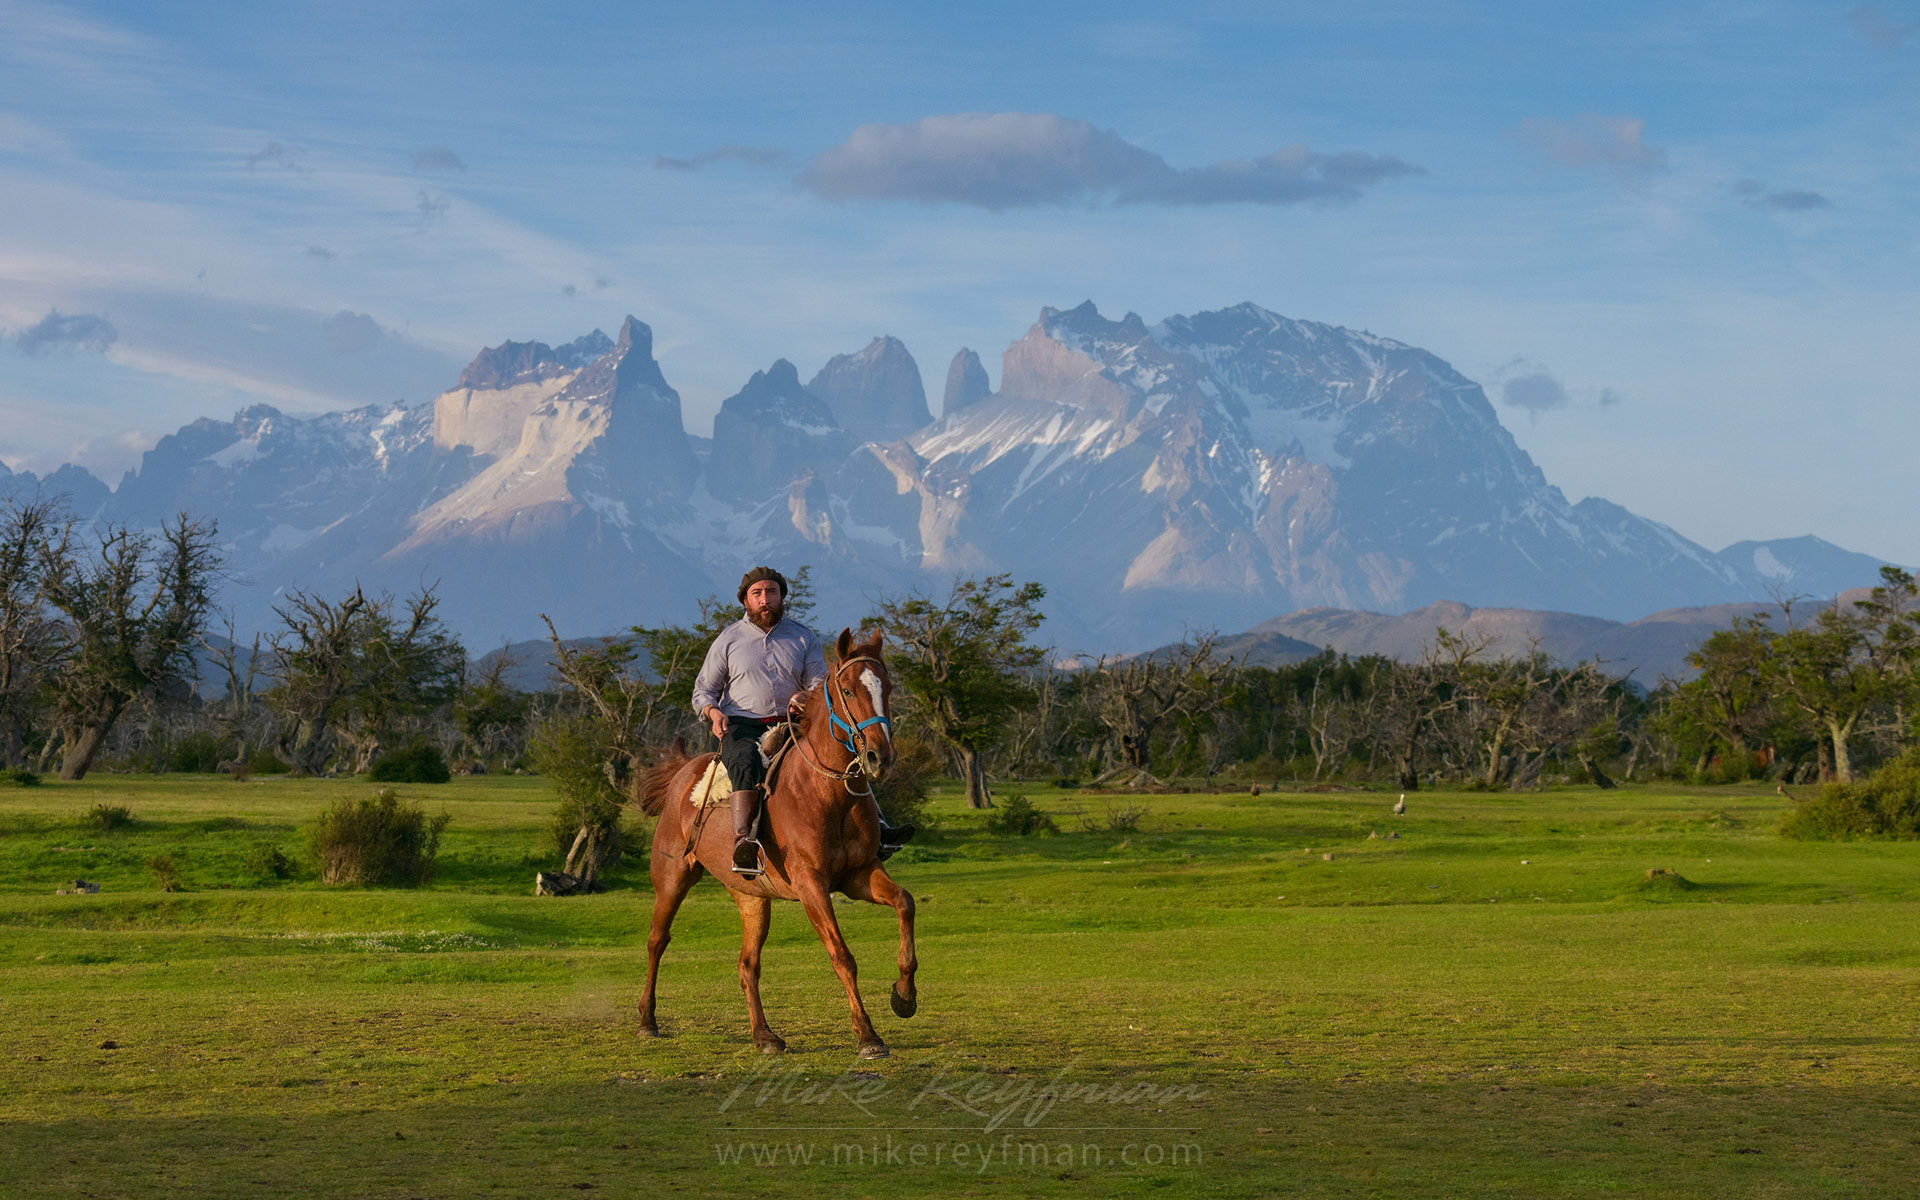 Local gaucho and estancia owner Mauricio wearing traditional gaucho outfit - bombacha trousers, boina beret and gaucho high boots on the horse. His estancia is  in the proximity of Torres del Paine National Park, Patagonia, Chile.  - Patagonia-Wildlife-and-Horses - Mike Reyfman Photography